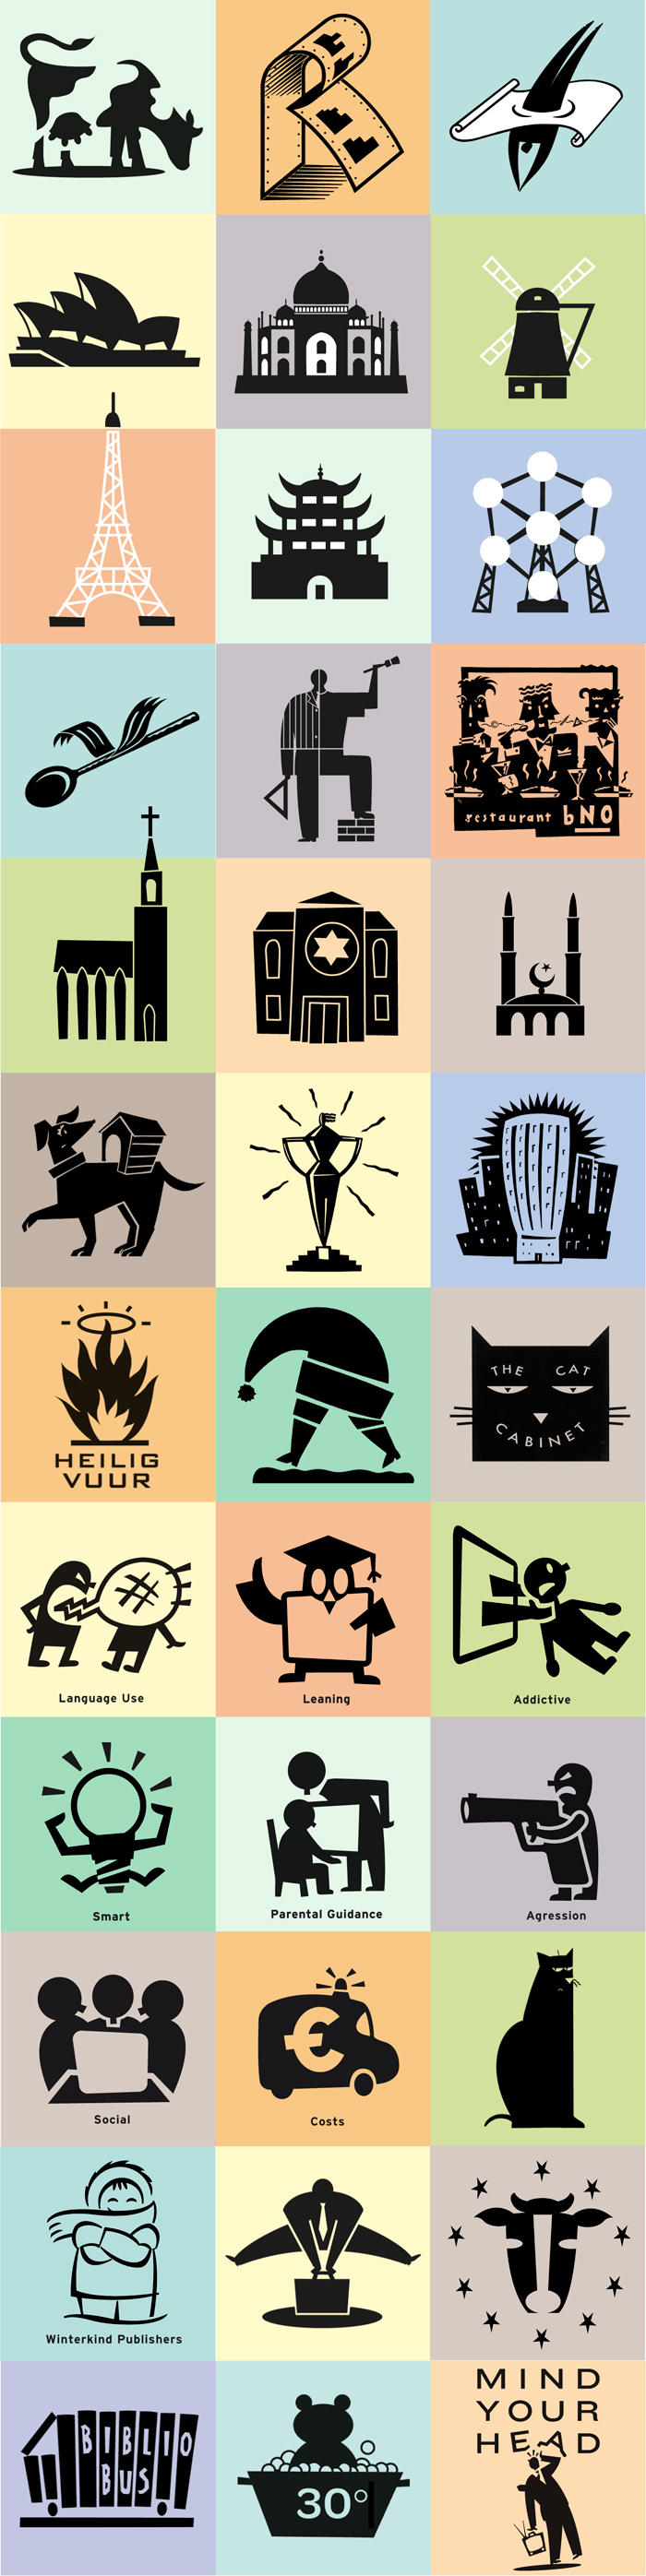 various illustrative pictograms, illustratieve pictogrammen